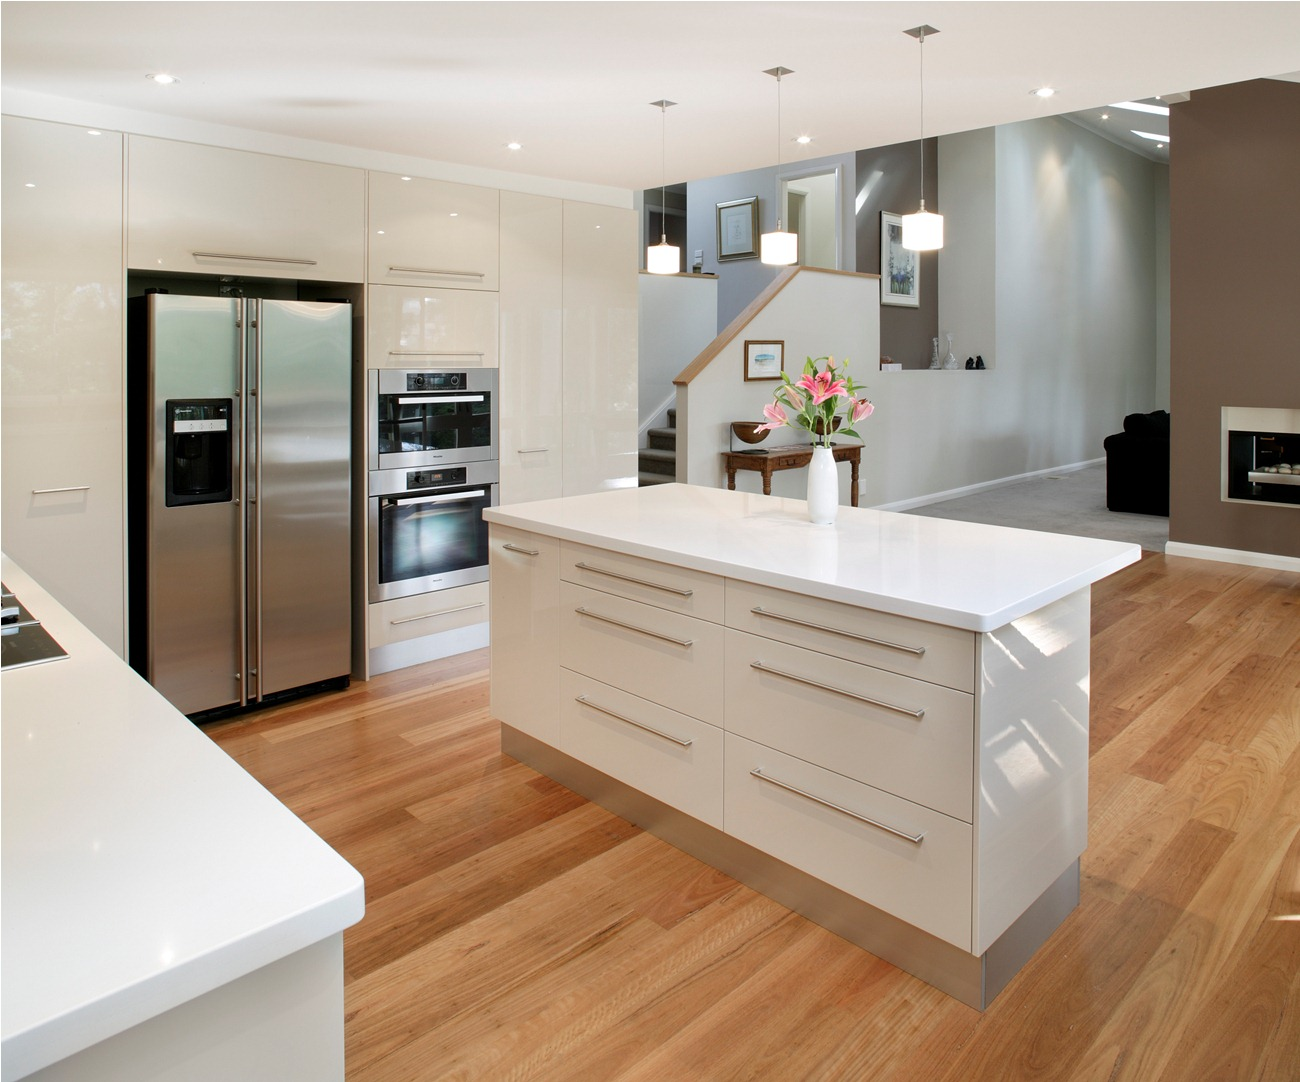 Beyond kitchens kitchen cupboards cape town kitchens for Design your kitchen